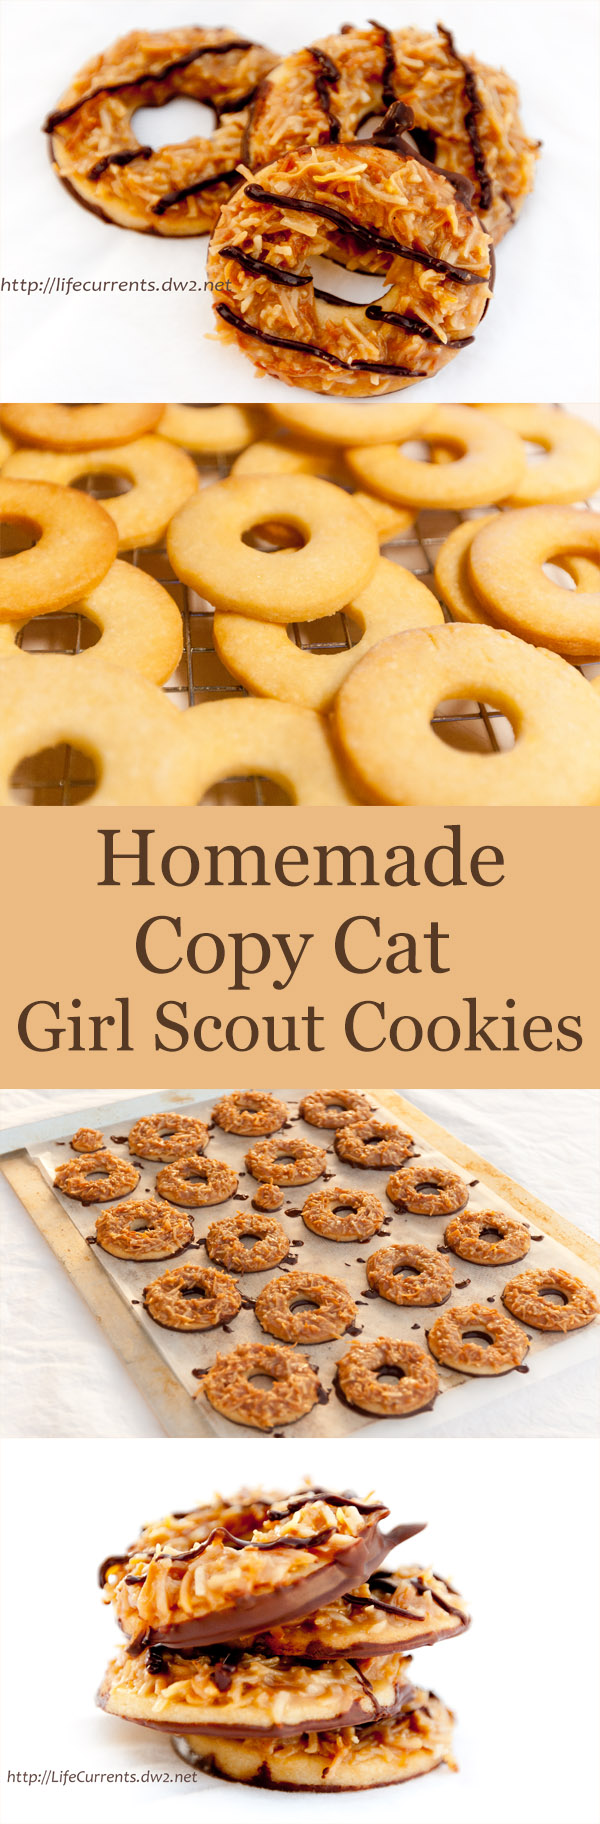 Homemade Tropical Pacific Cookies (aka homemade Girl Scout Samoas or caramel delights)